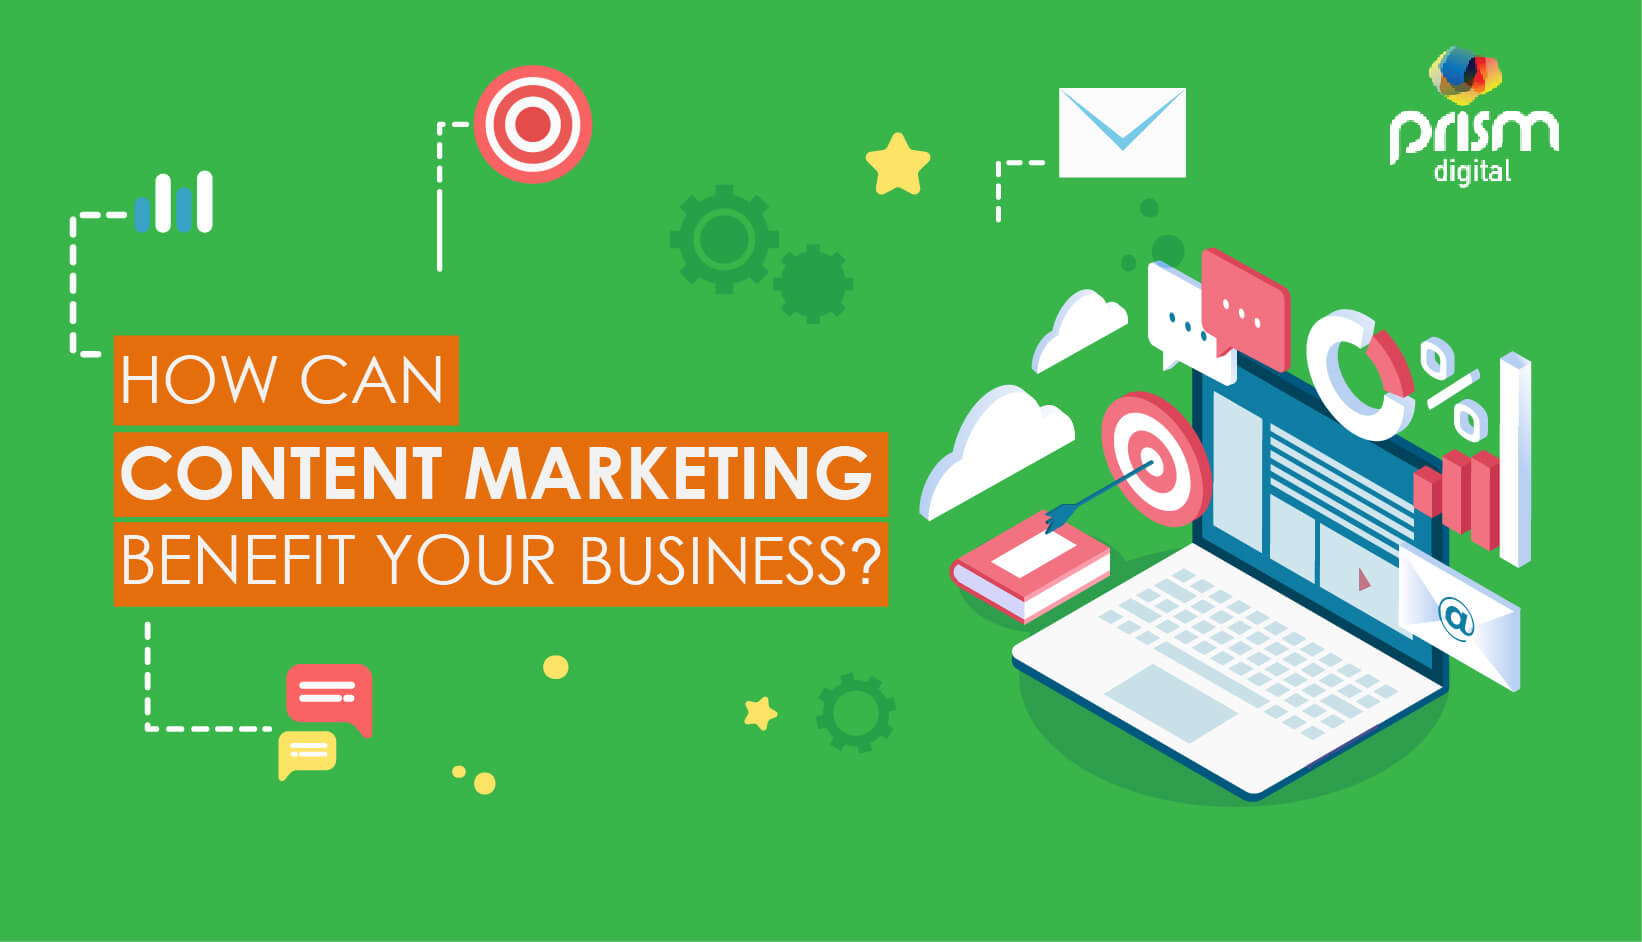 Benefits of Content Marketing for Businesses in 2021